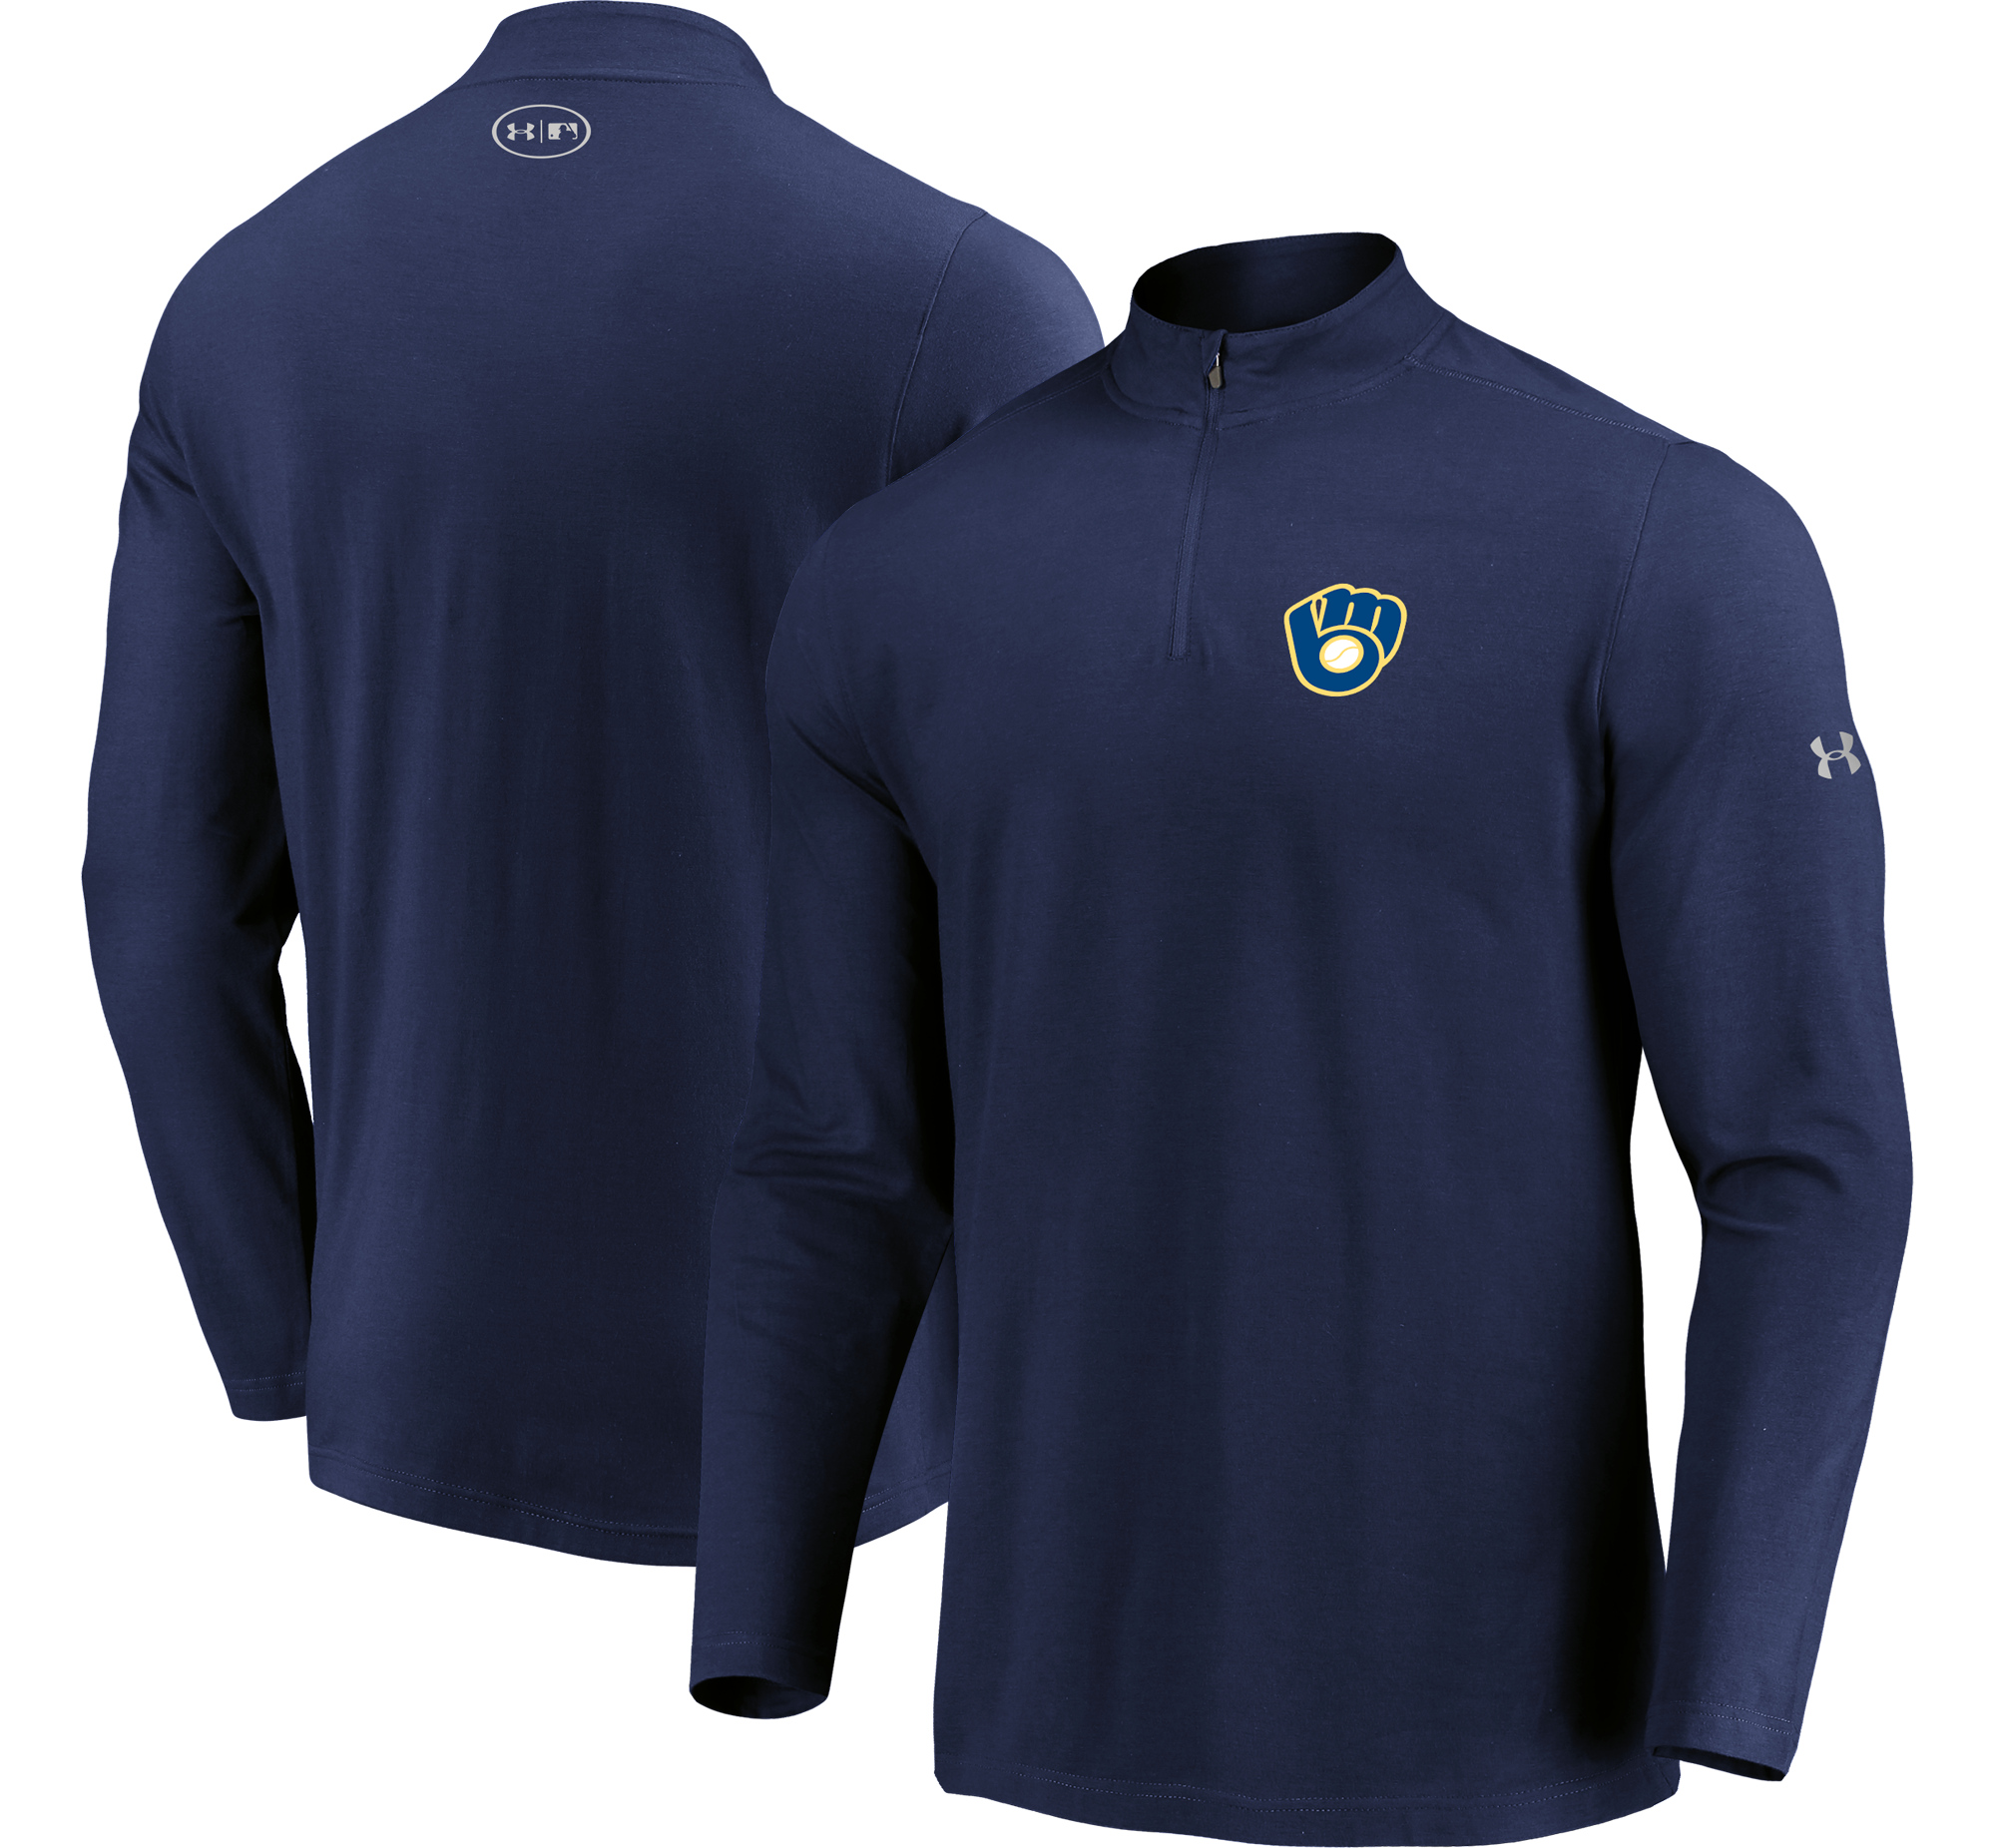 Milwaukee Brewers Under Armour Passion Performance Tri-Blend Quarter-Zip Pullover Jacket - Navy